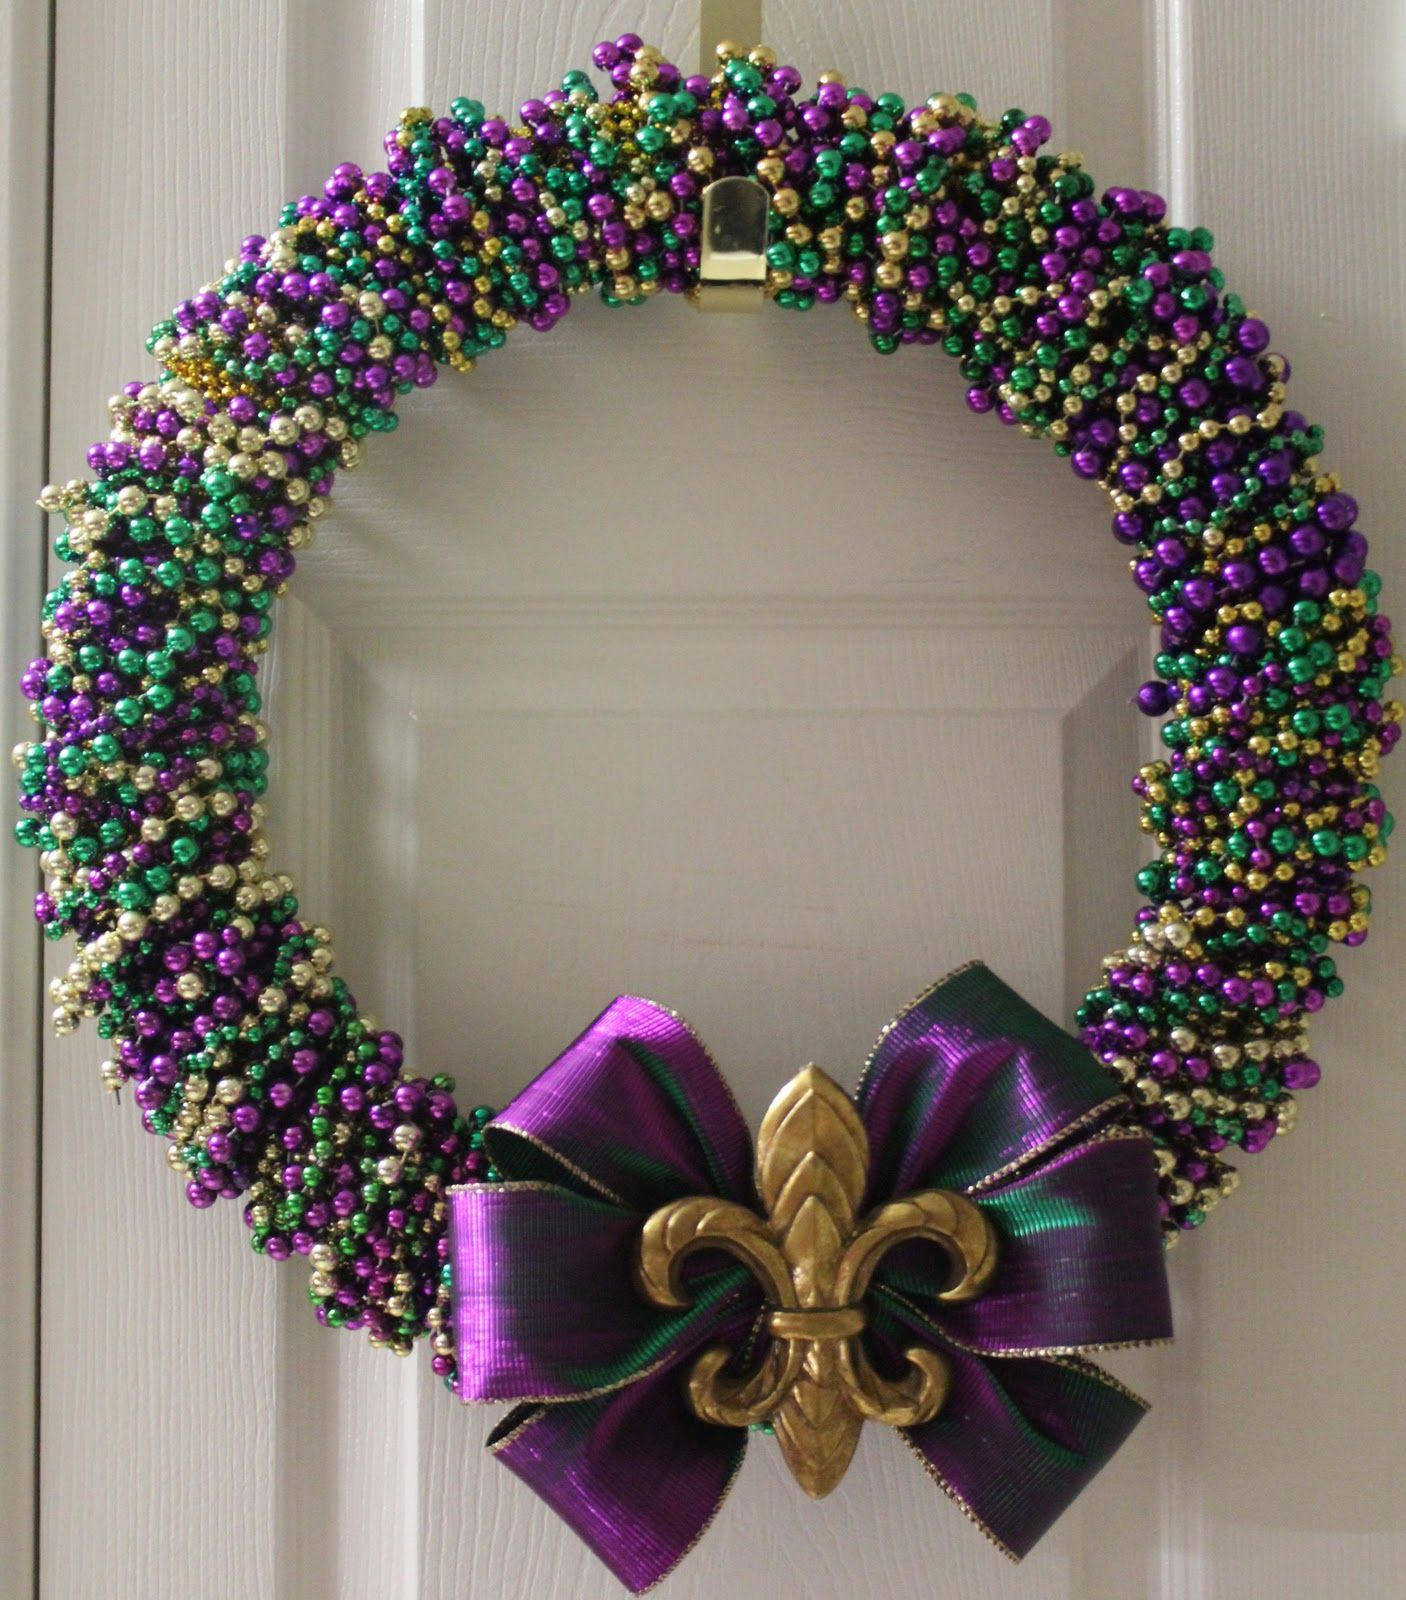 Tutorial ~ Now I know what to do with all those old Mardi Gras beads!